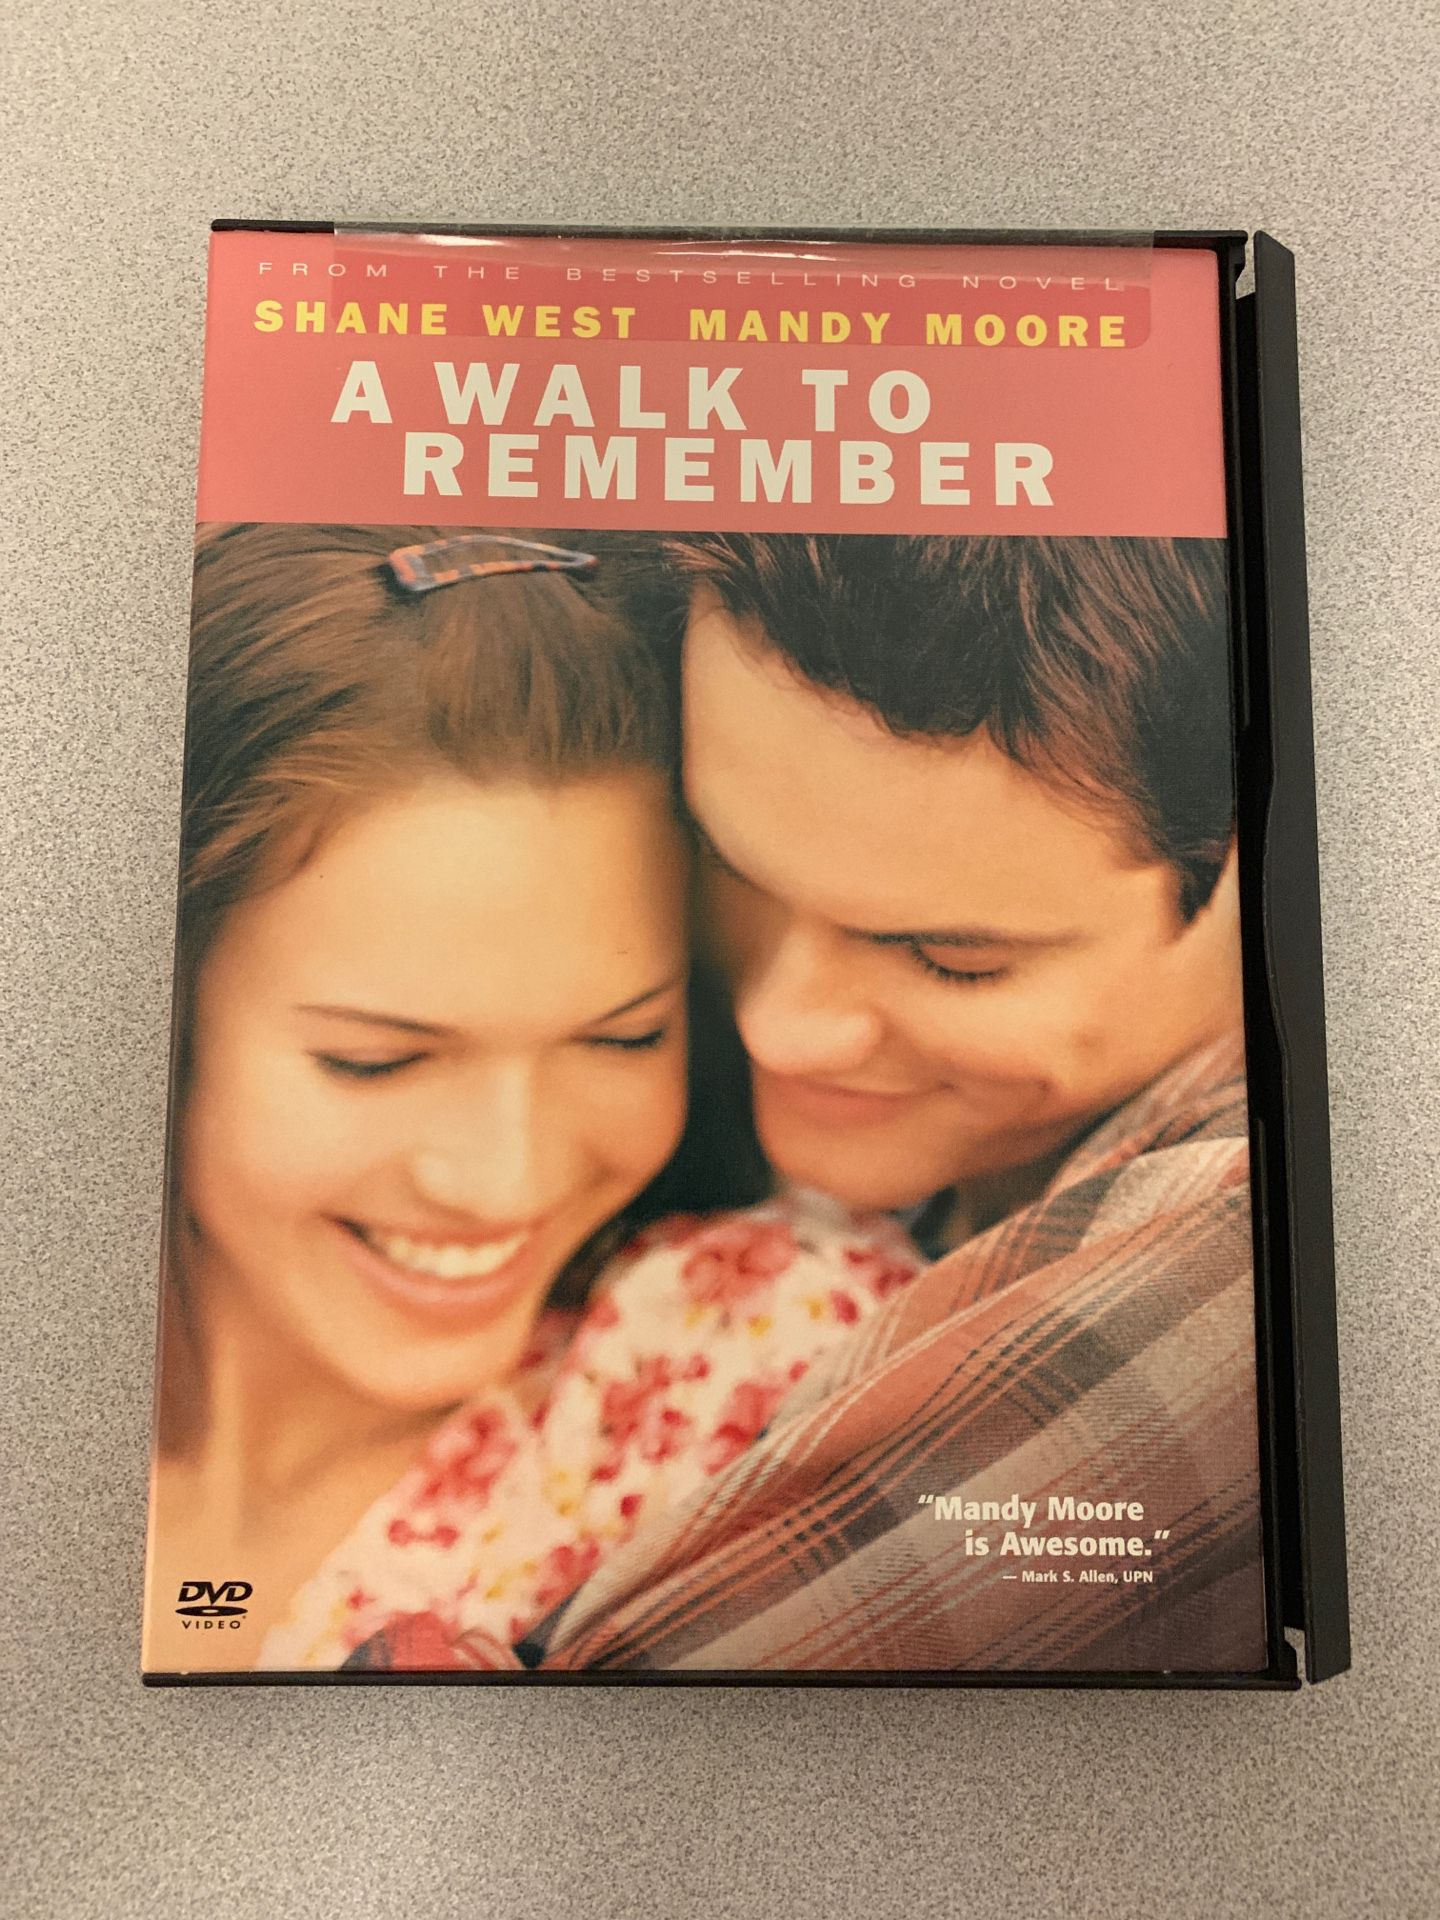 A walk to remember with Mandy Moore DVD